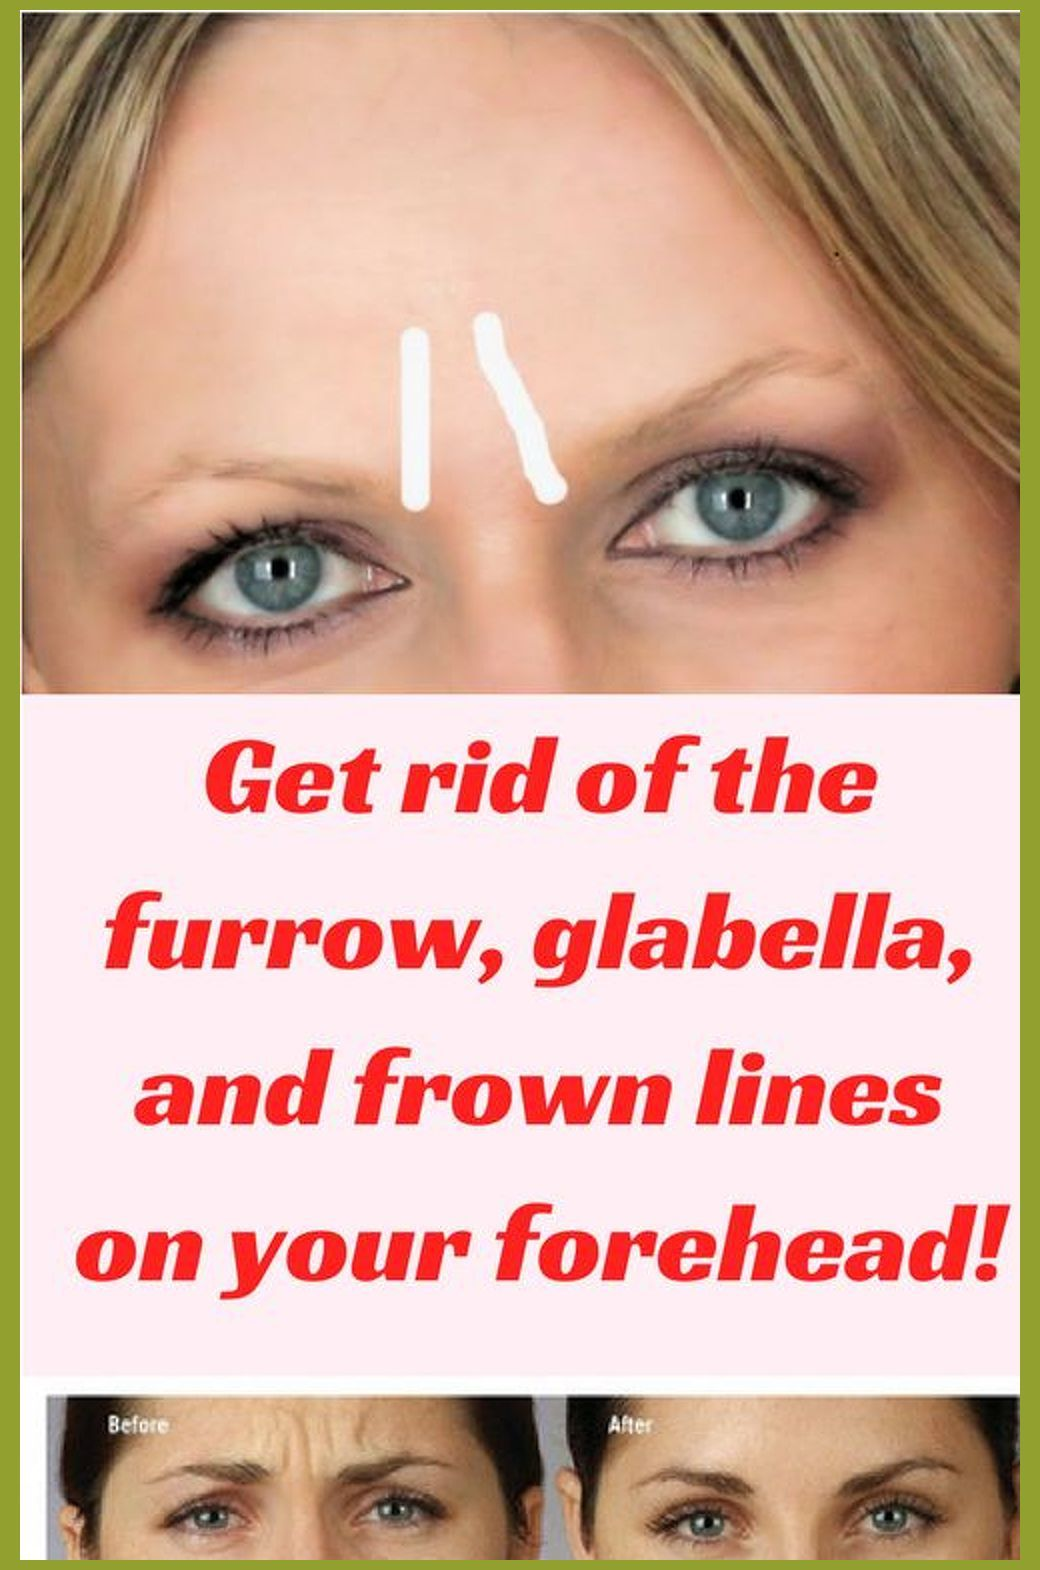 Forehead wrinkles means the furrowlike lines created by